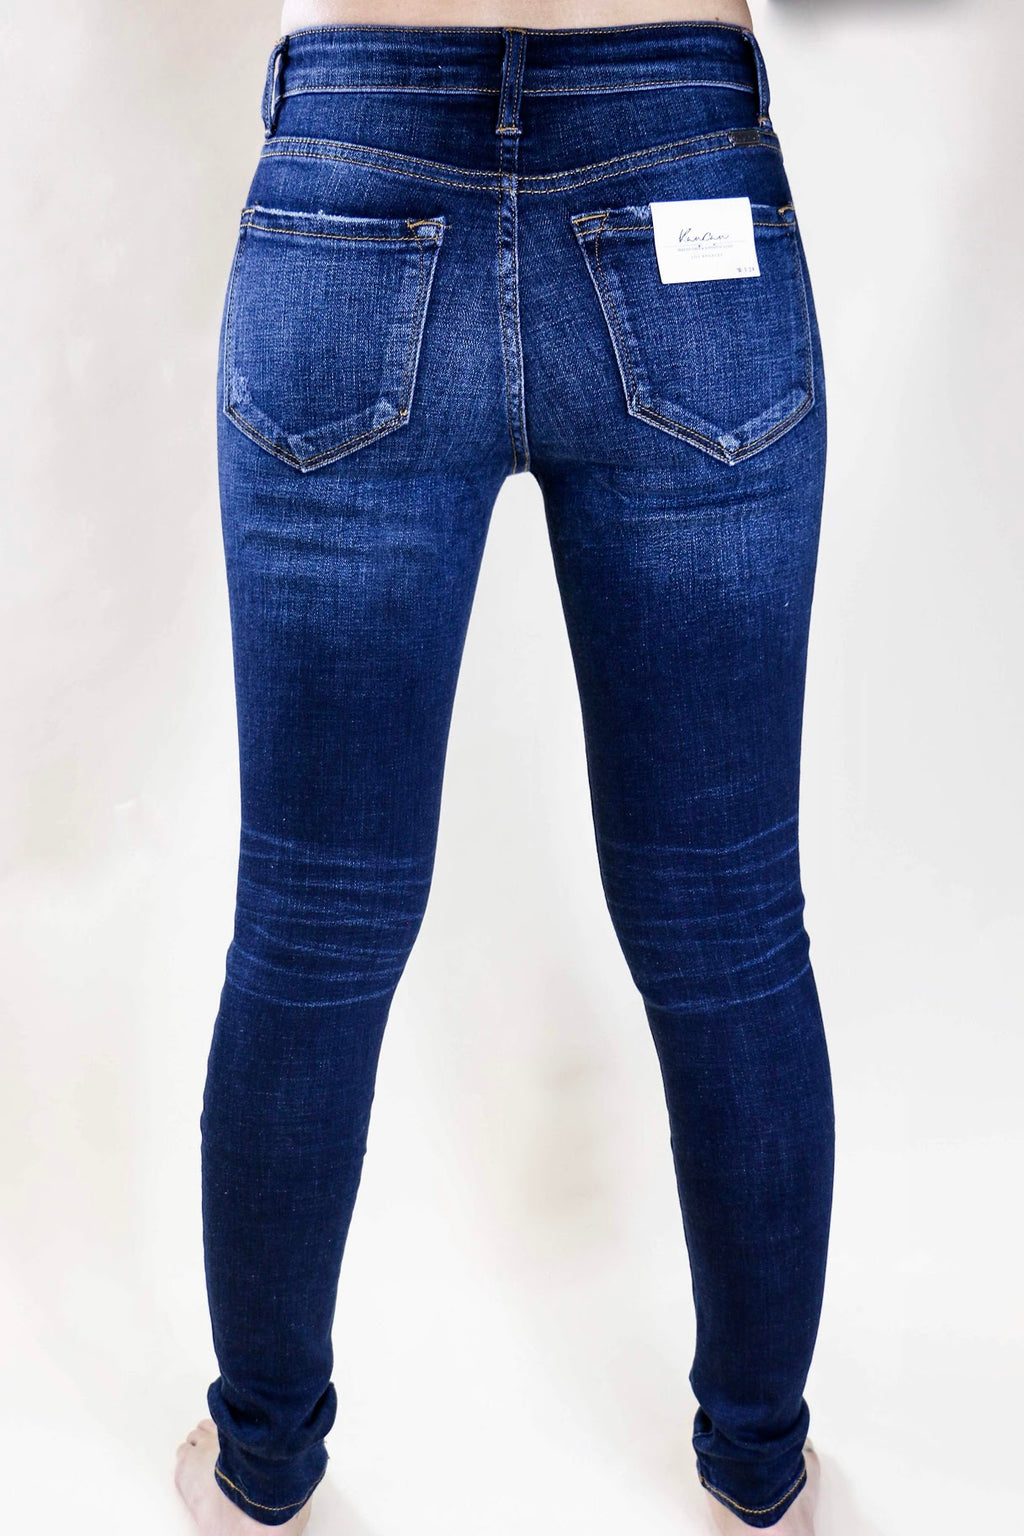 KanCan Dark Wash Skinnies